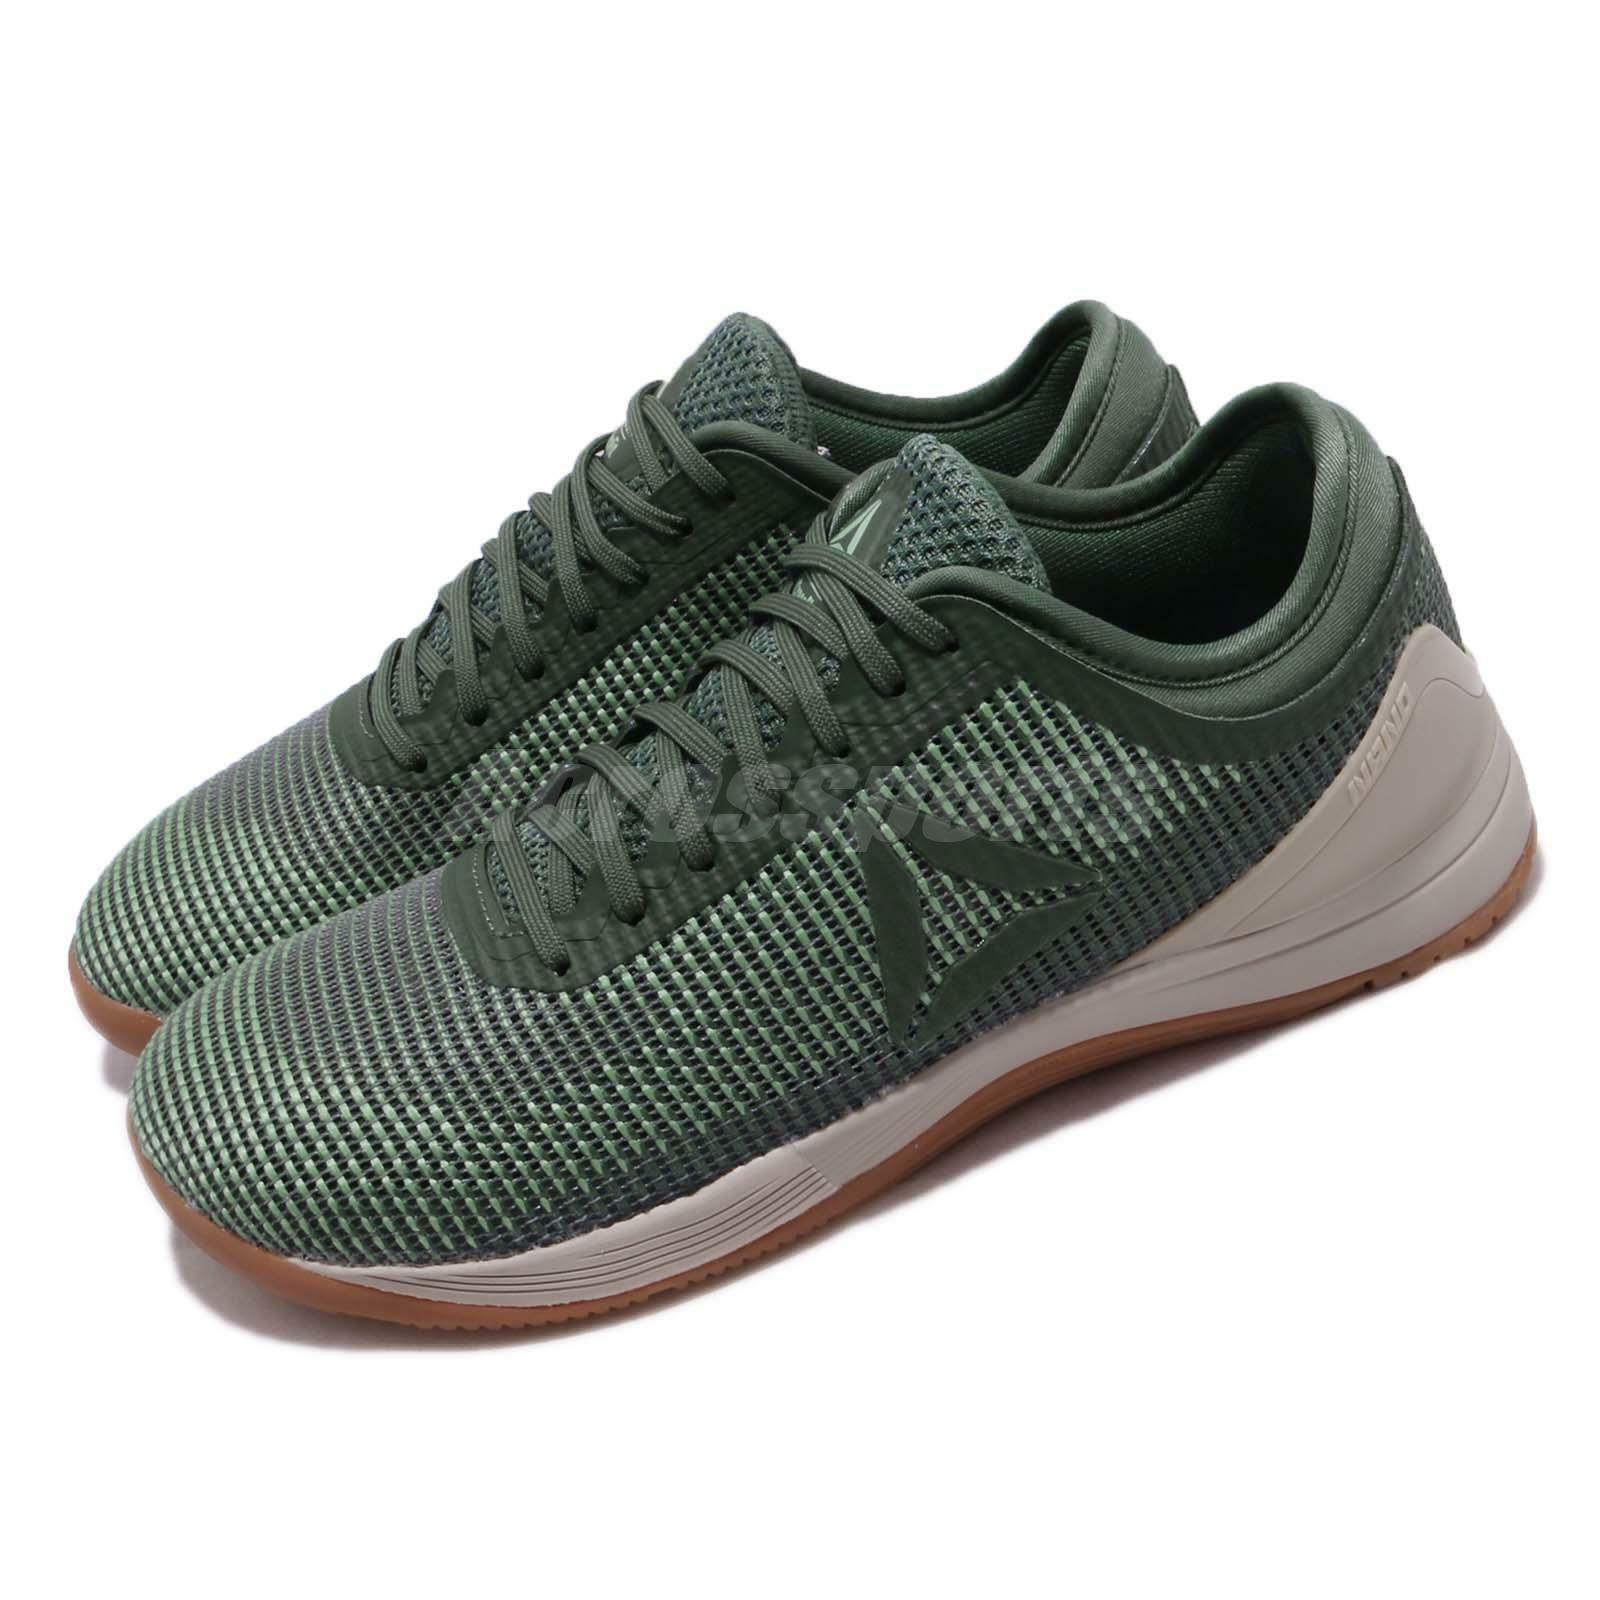 Reebok R Cross CrossFit Nano 8.0 VIII Verde Hombre Cross R Training Gym Zapatos CN2971 0ce841